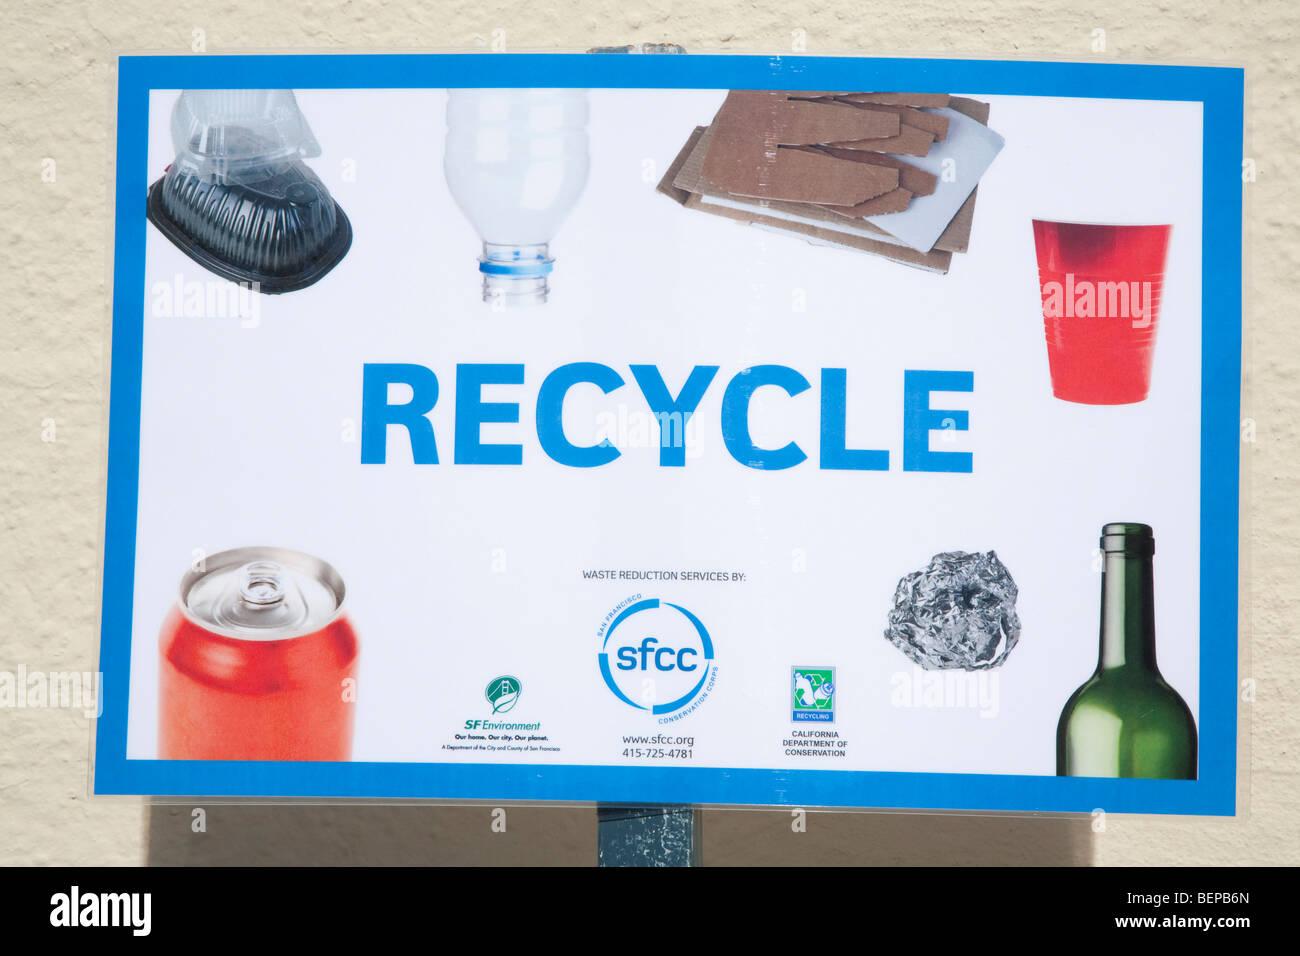 'Recycle' recycling sign showing recyclable materials - aluminum cans, glass bottles, plastic bottles, cardboard, - Stock Image